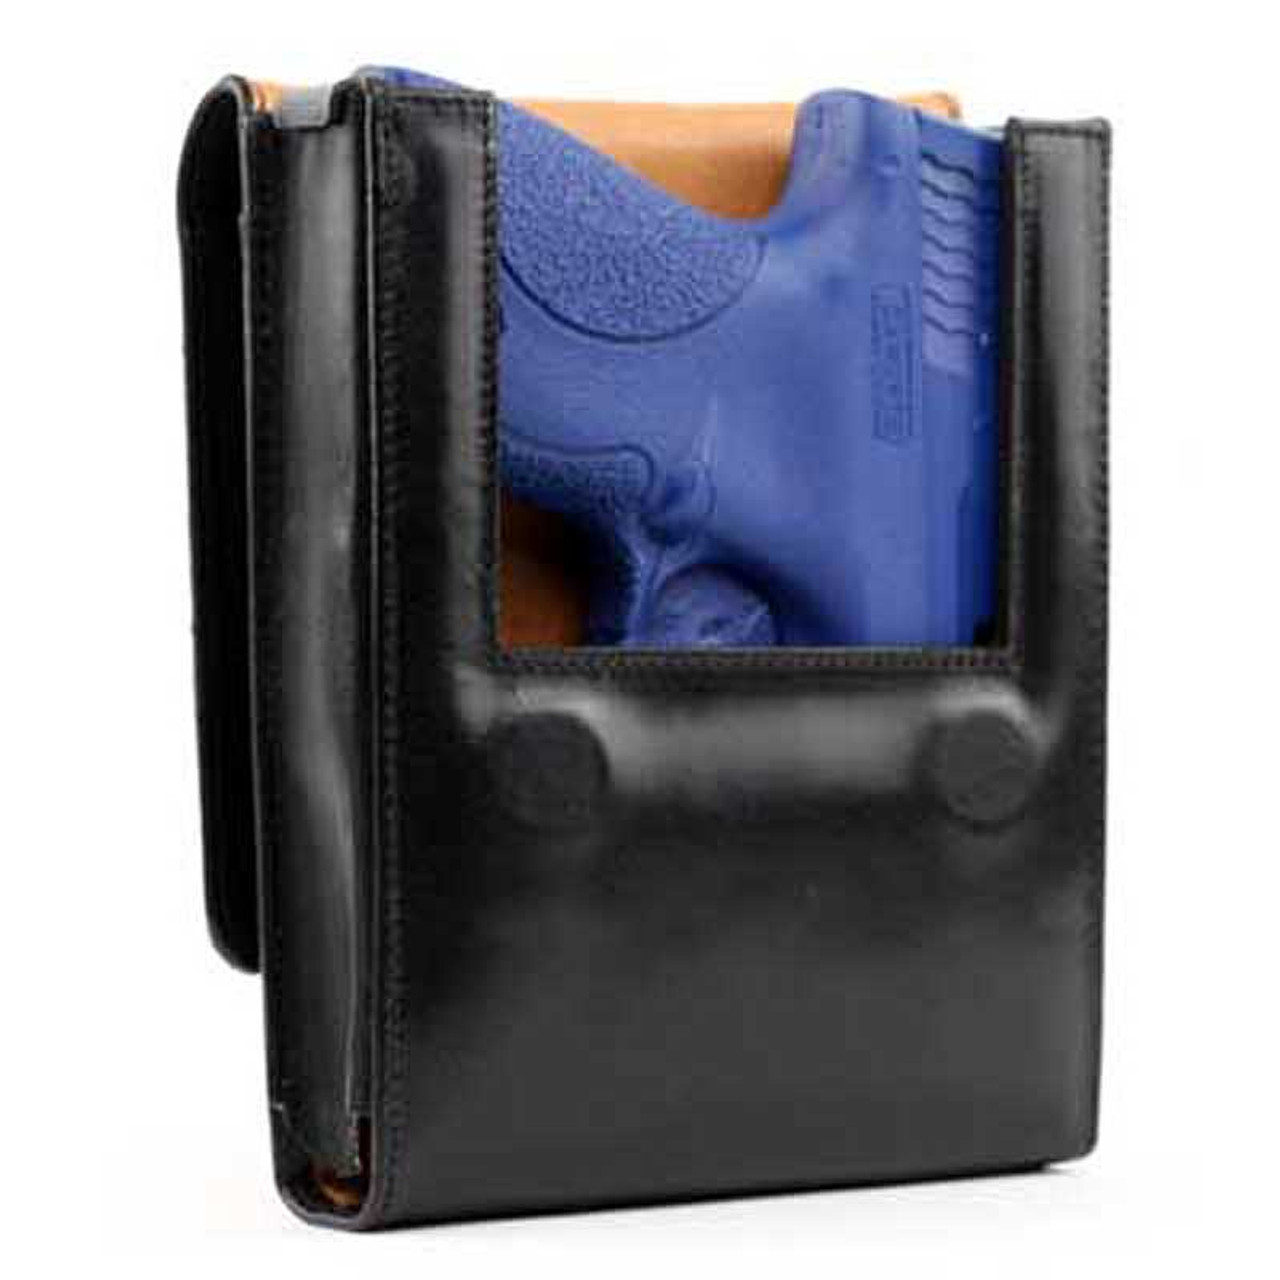 M&P 45 Compact Concealed Carry Holster (Belt Loop)